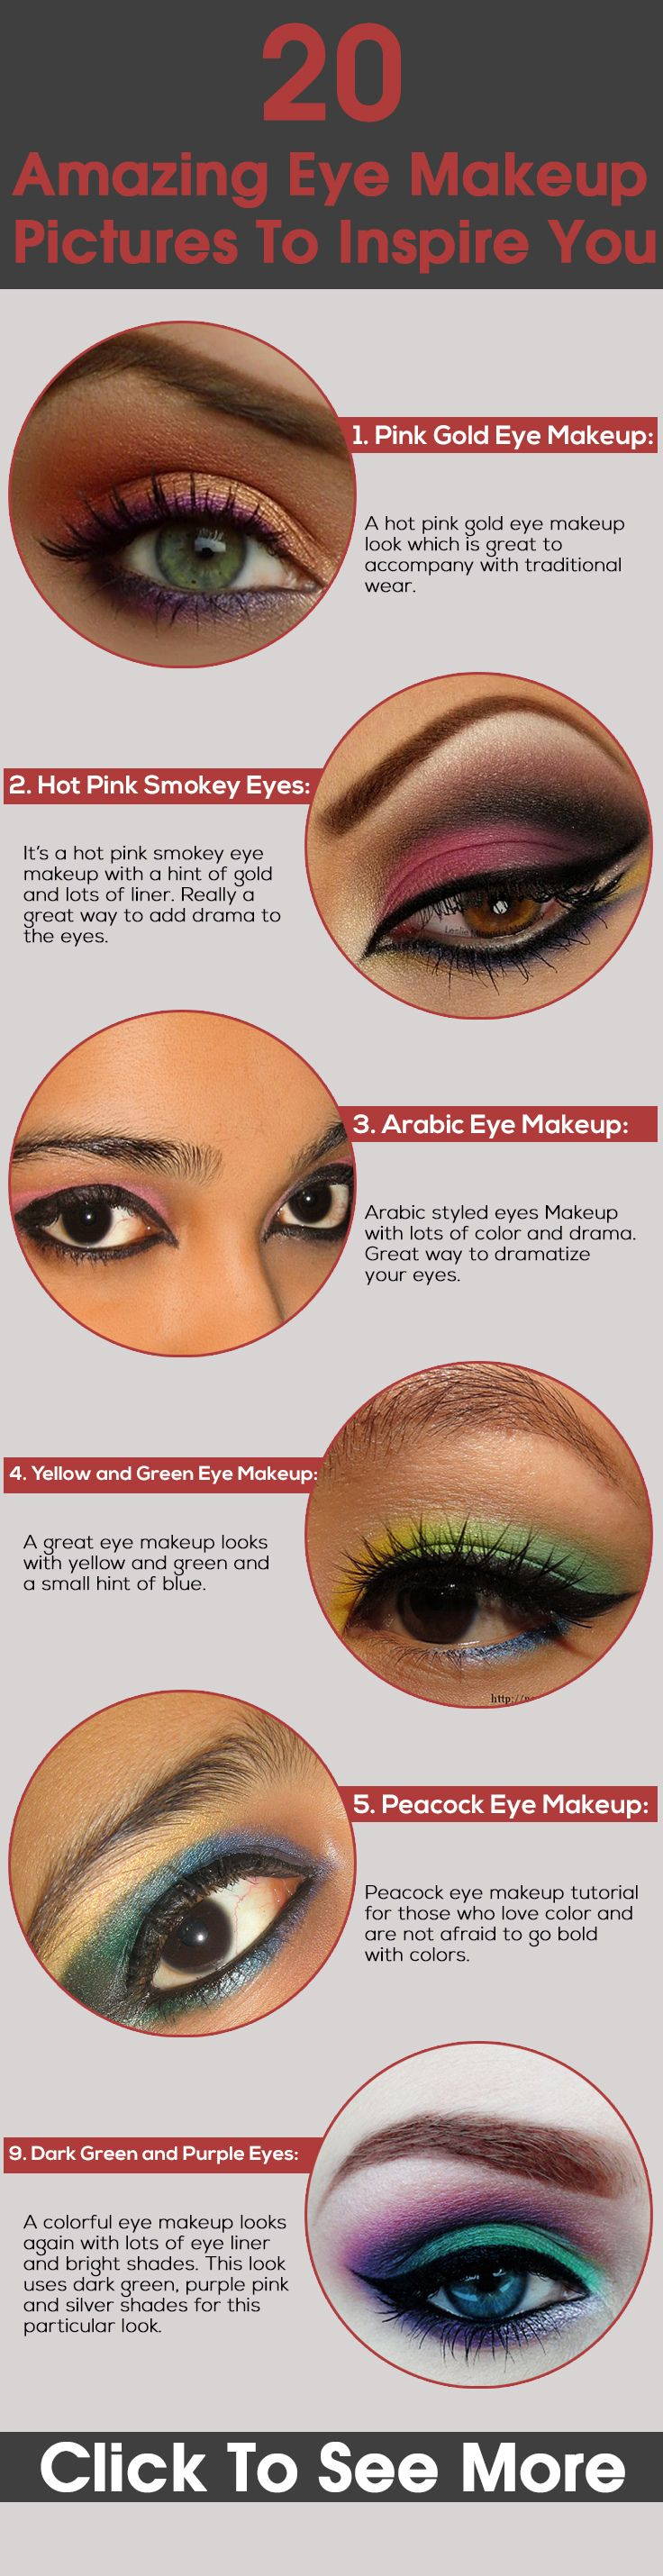 Eye makeup is a great way to make your eyes look more beautiful.So look at some of the great eye makeup pictures that will leave you wanting more!!